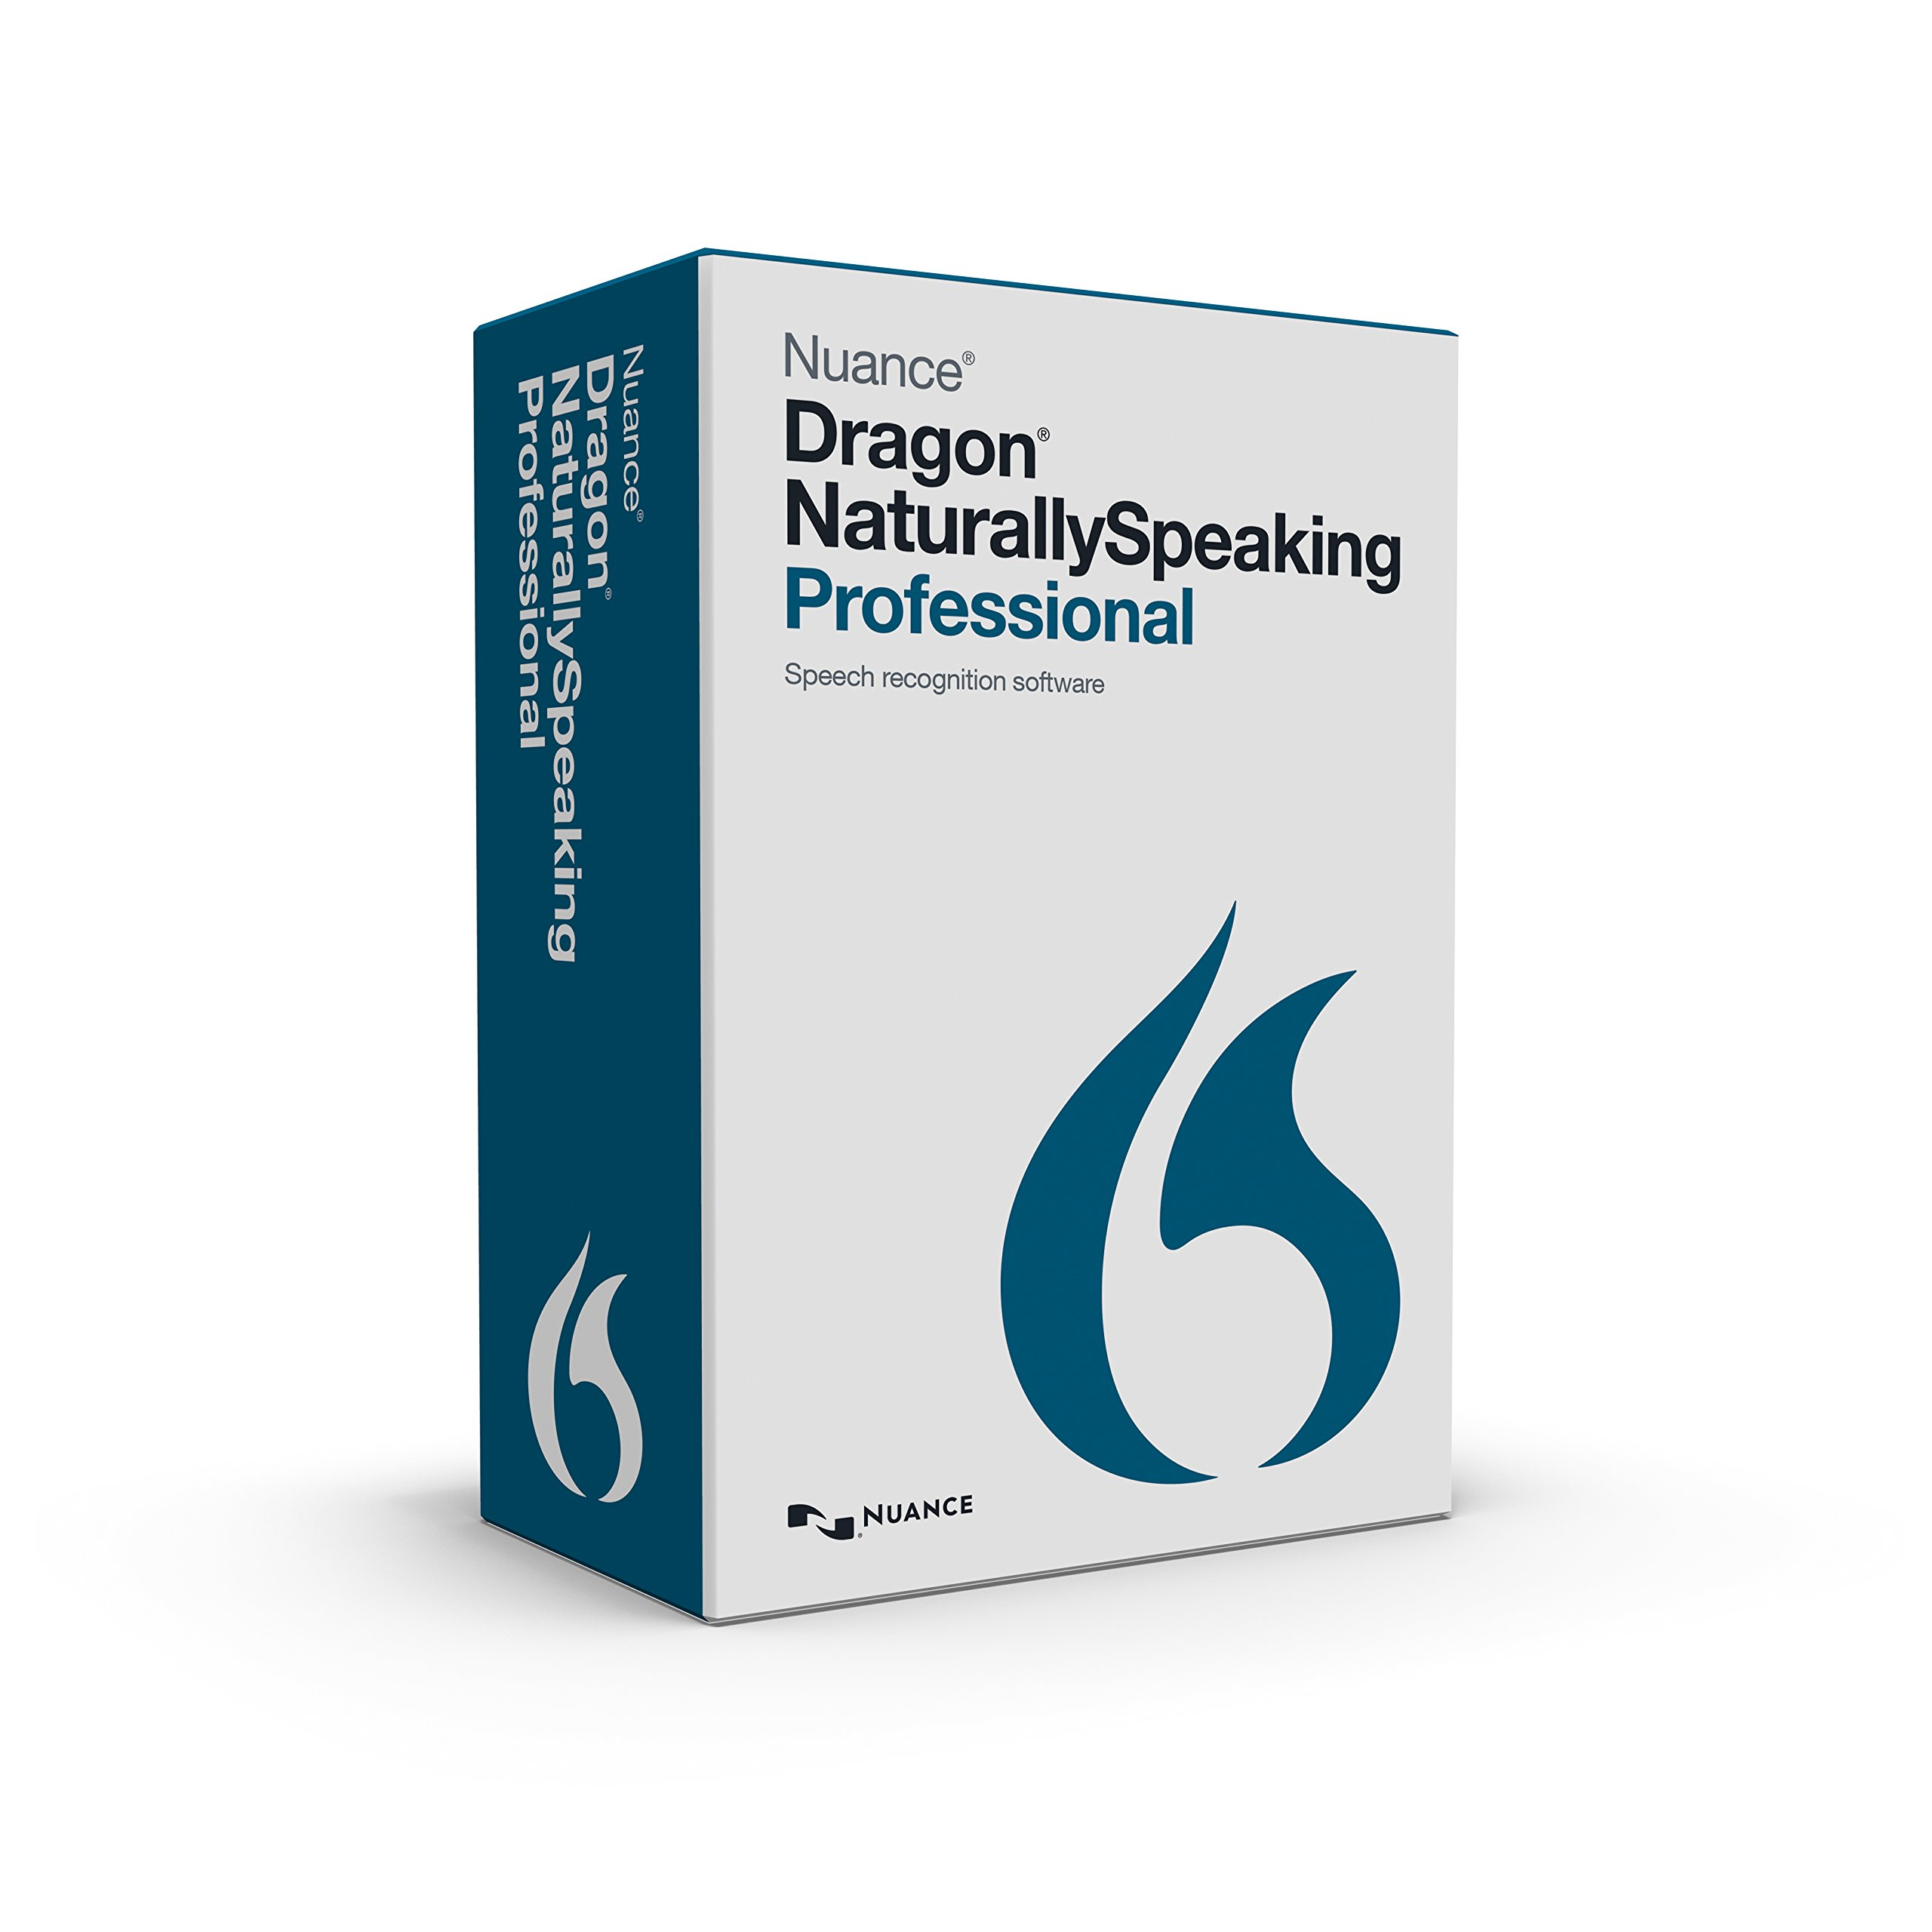 Nuance Dragon NaturallySpeaking v.13.0 Professional - 1 User [Electronics]